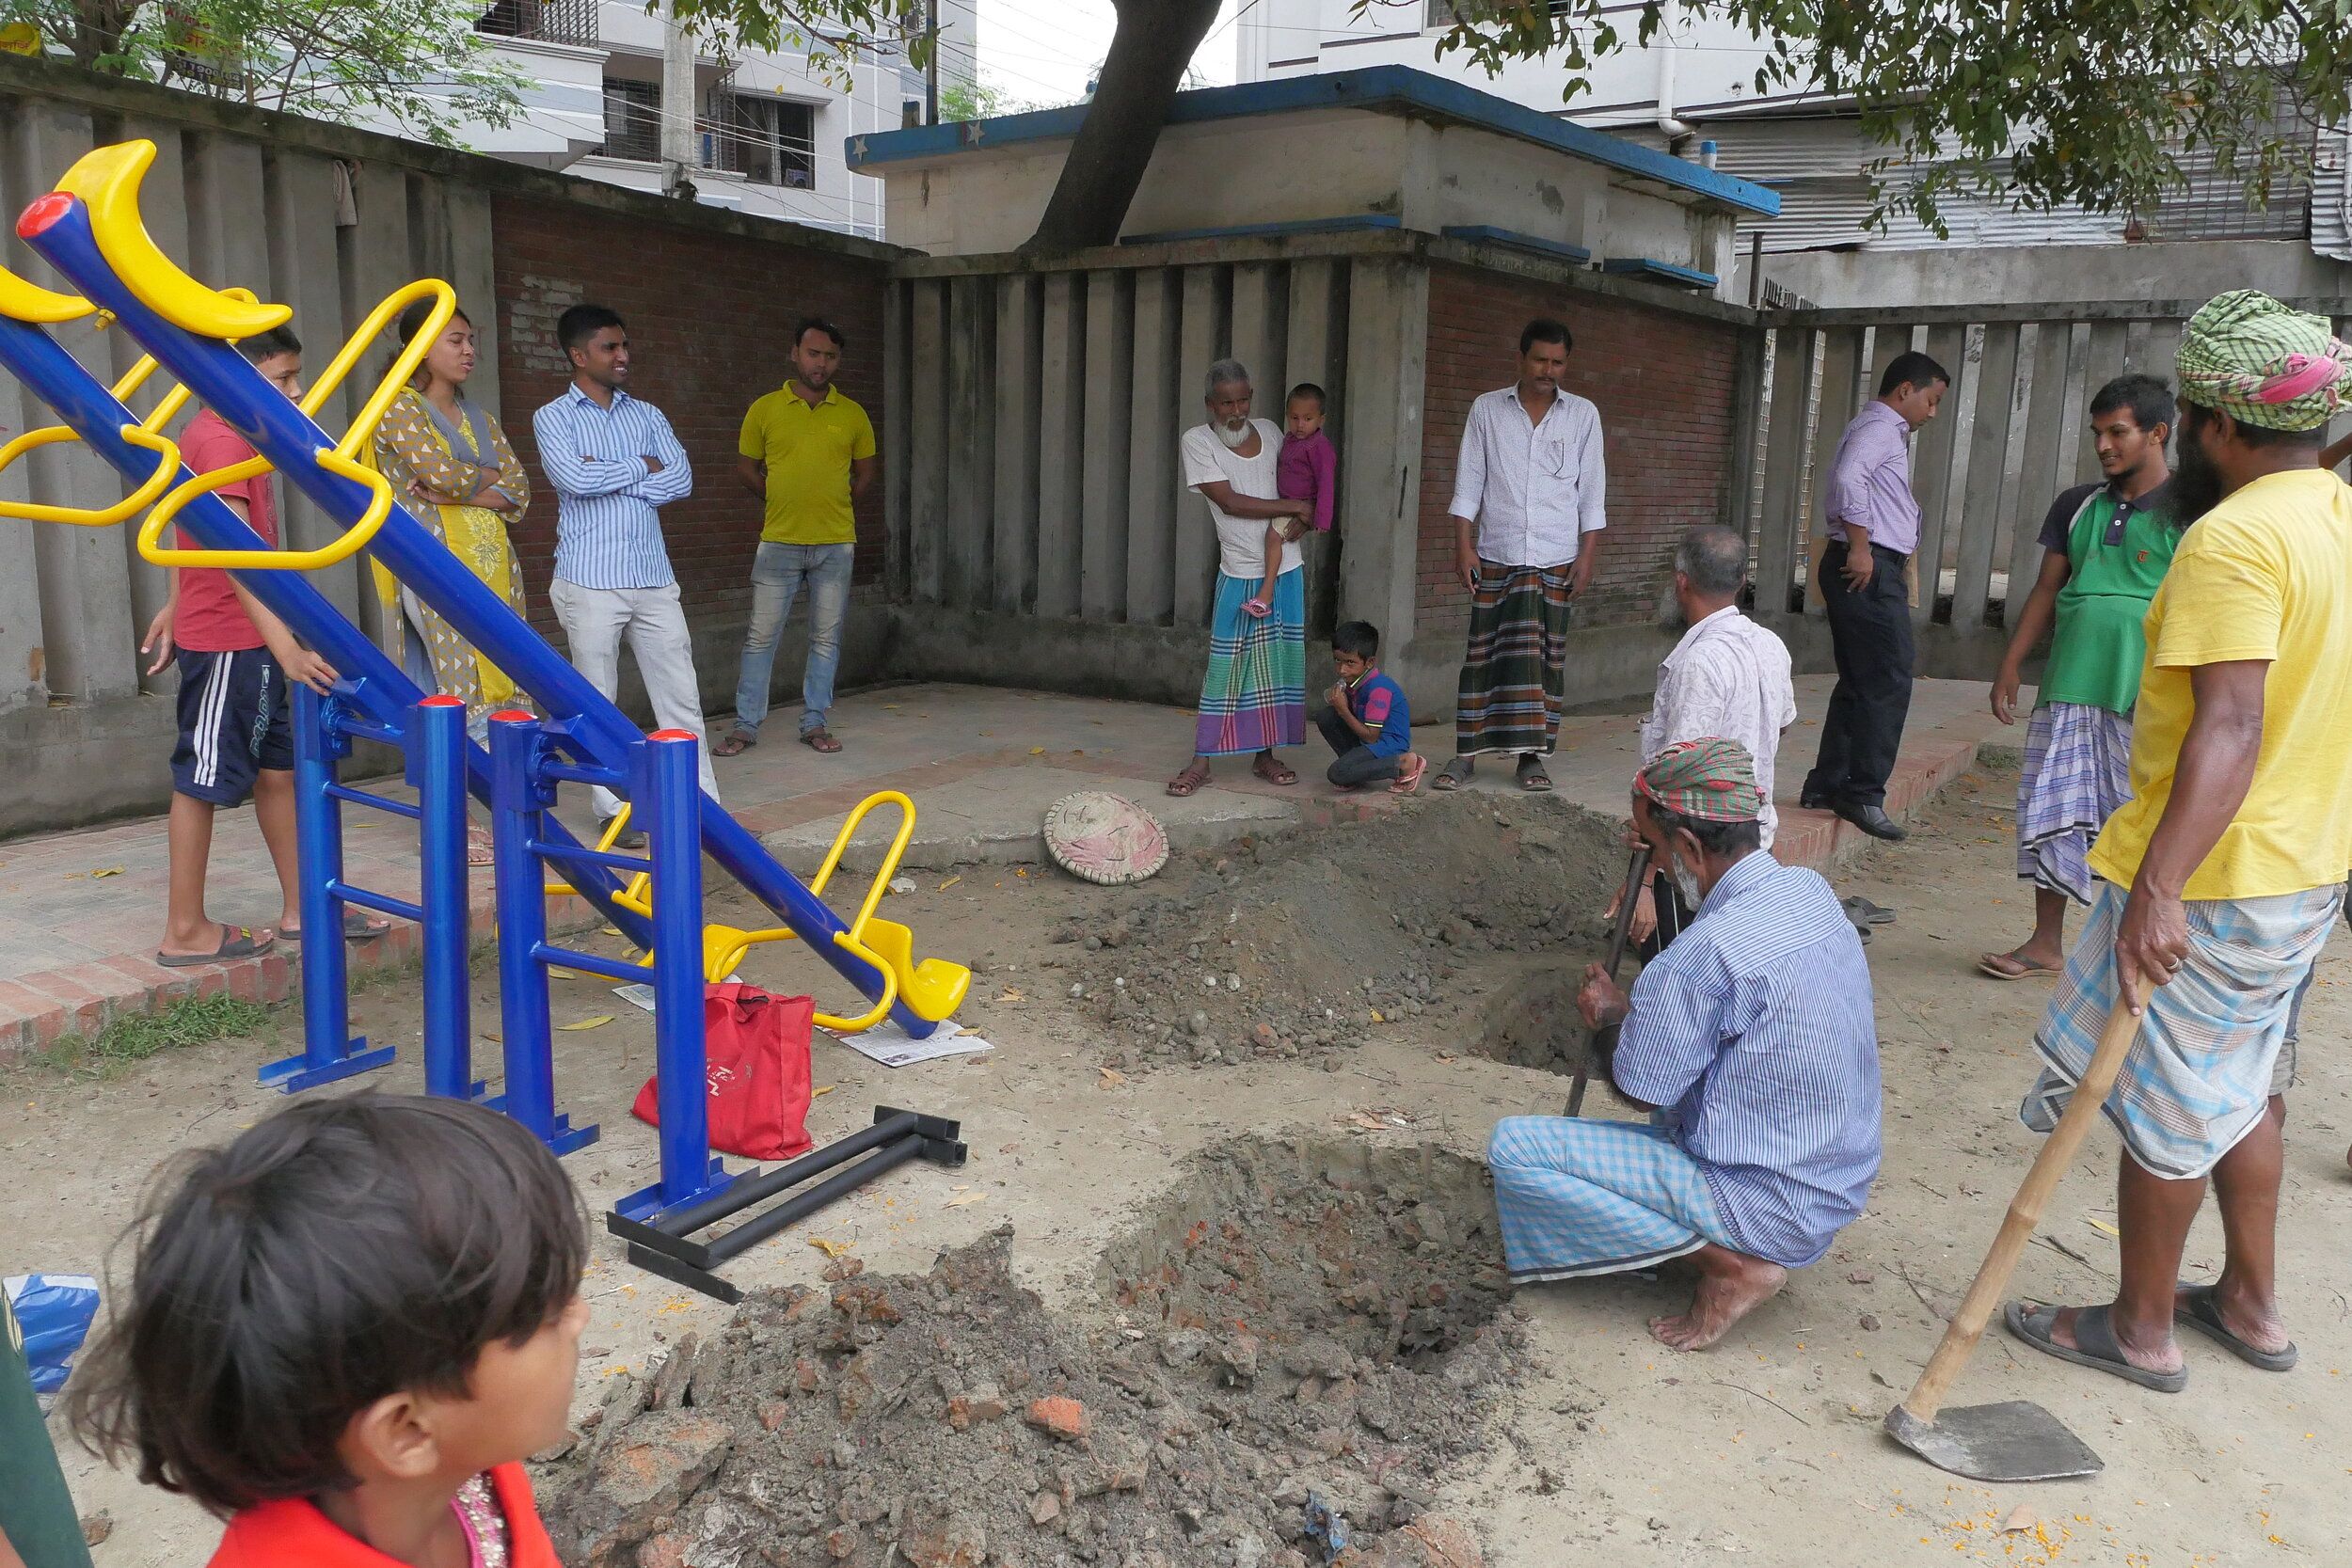 Local residents gather to install a seesaw. Credit: UN-Habitat